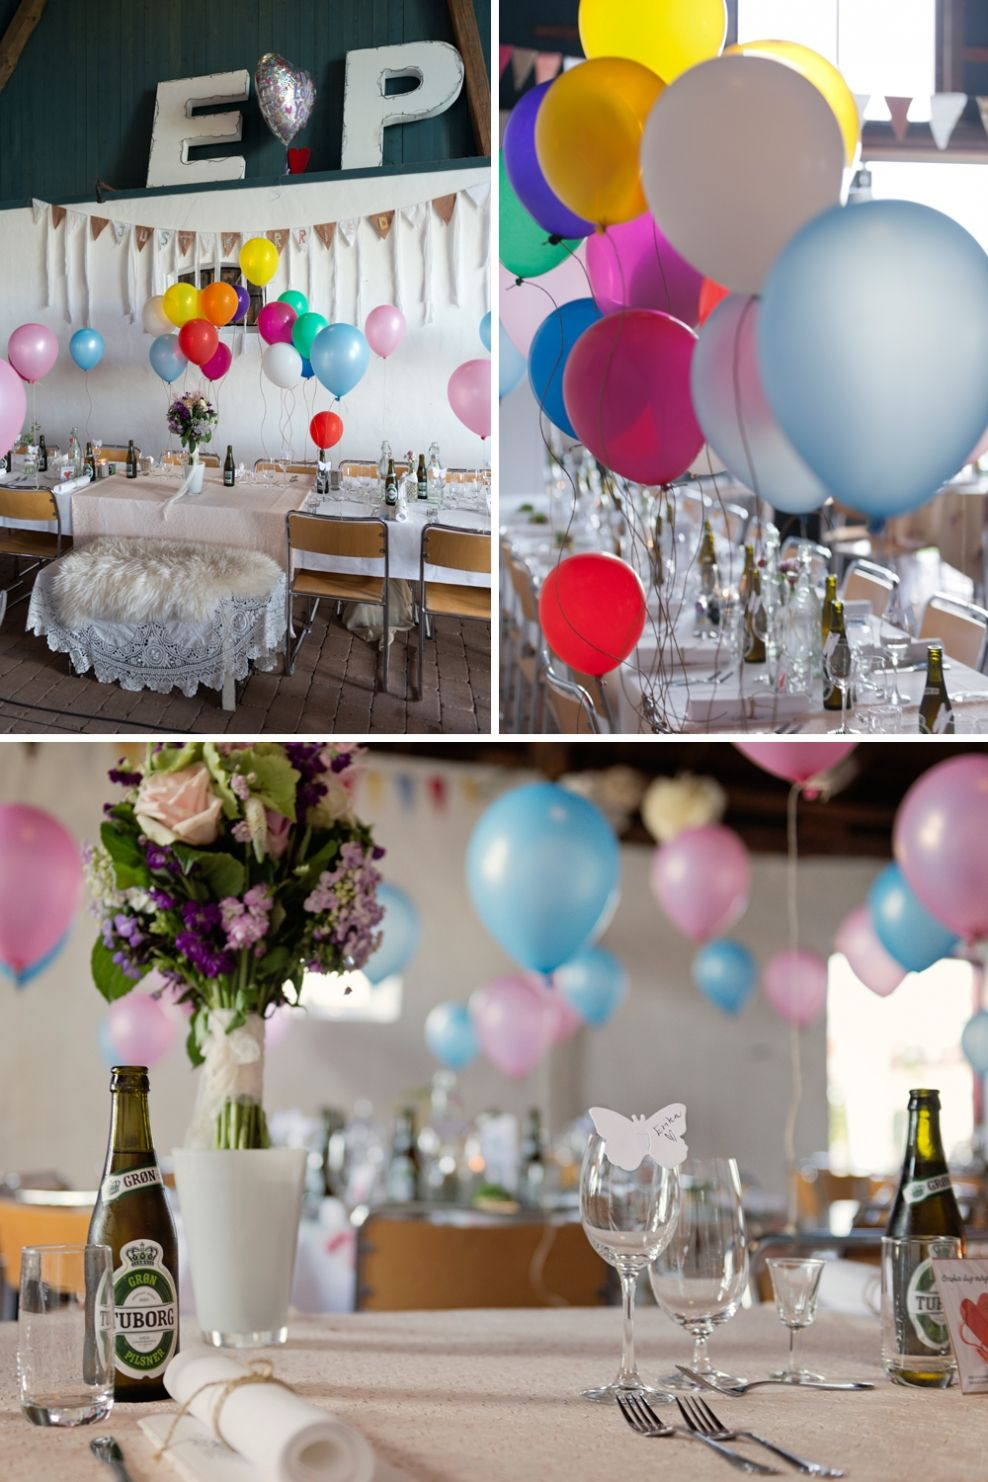 Balloons wedding decorations signs wedding decorations diy wedding balloons wedding decorations signs wedding decorations diy wedding ideas and inspirations photo by anna lauridsen junglespirit Gallery